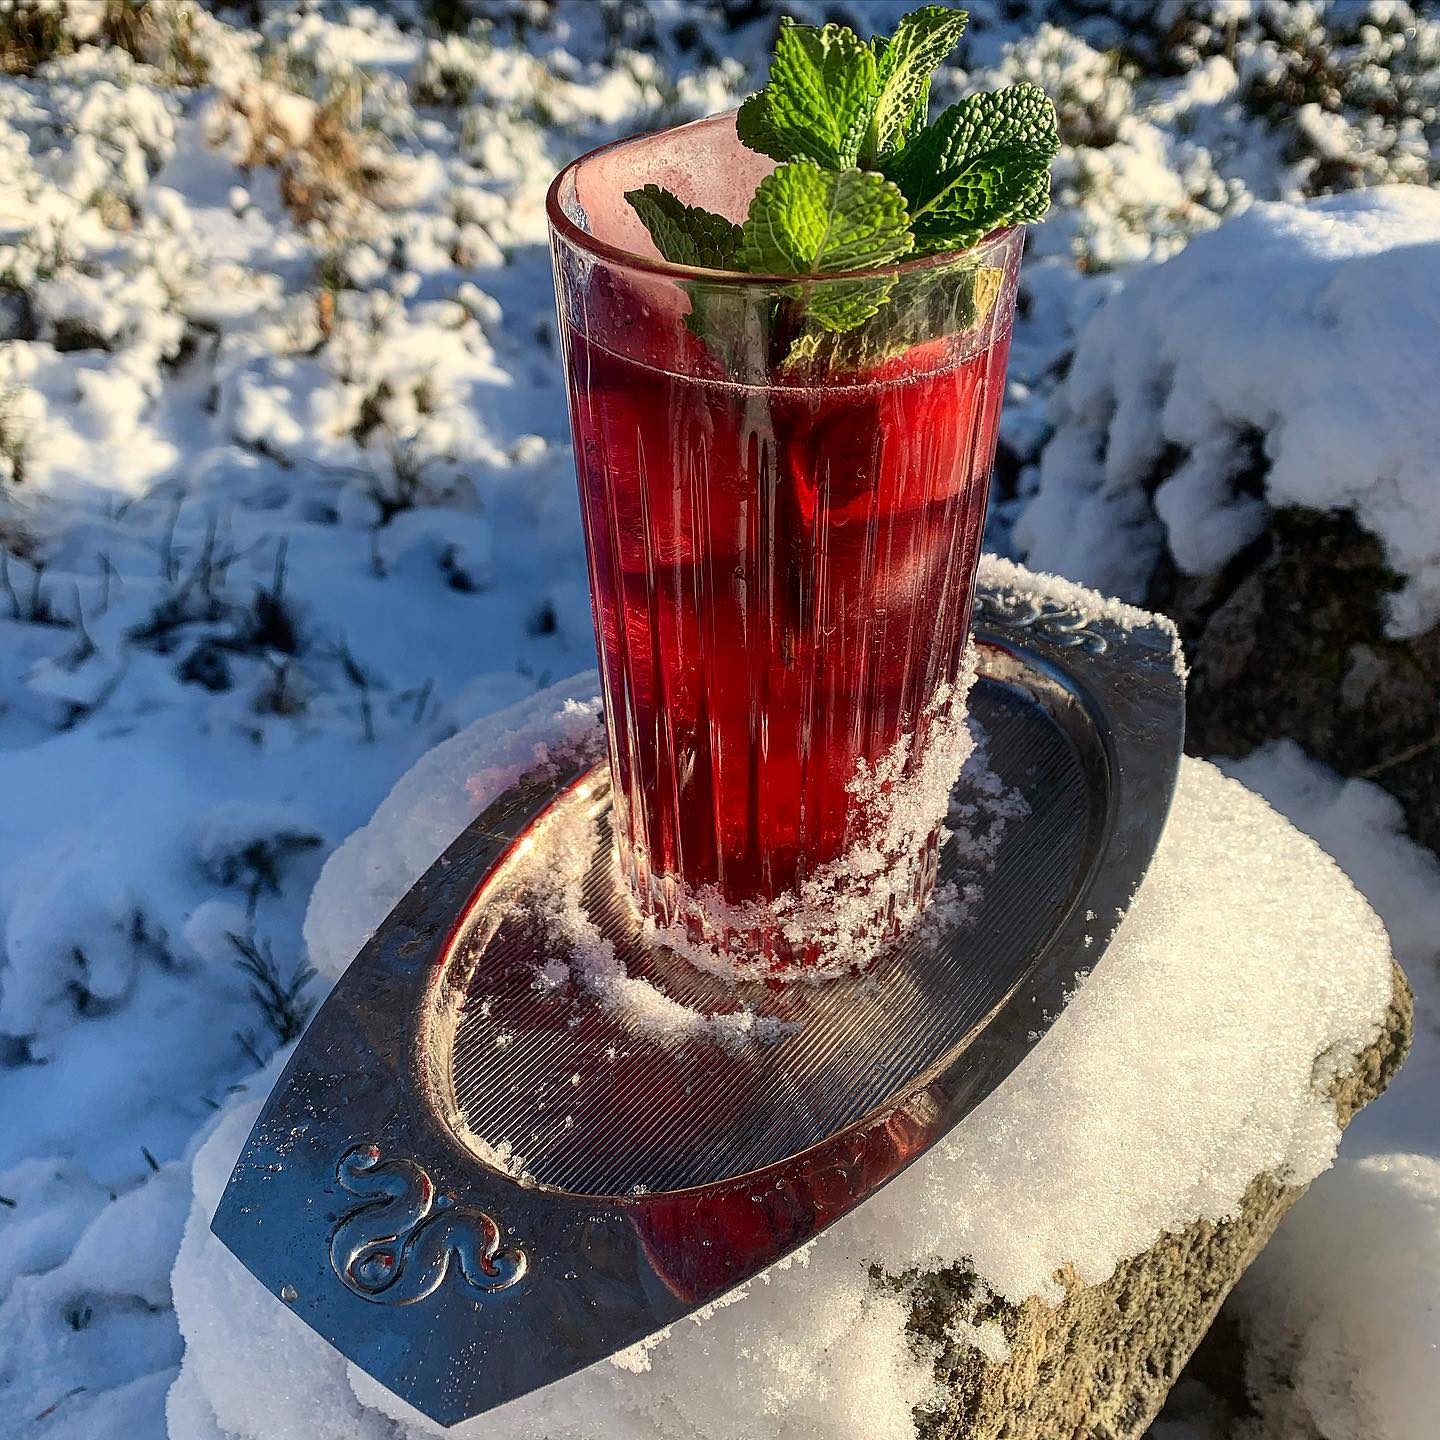 Veckans Cocktail :Don's Daughter -Bourbon, Amaro Montenegro, Körsbärsjuice, Myntasyrup, Citron, Sodavatten, Cherry&Angostura Bitters #cocktail#cocktails